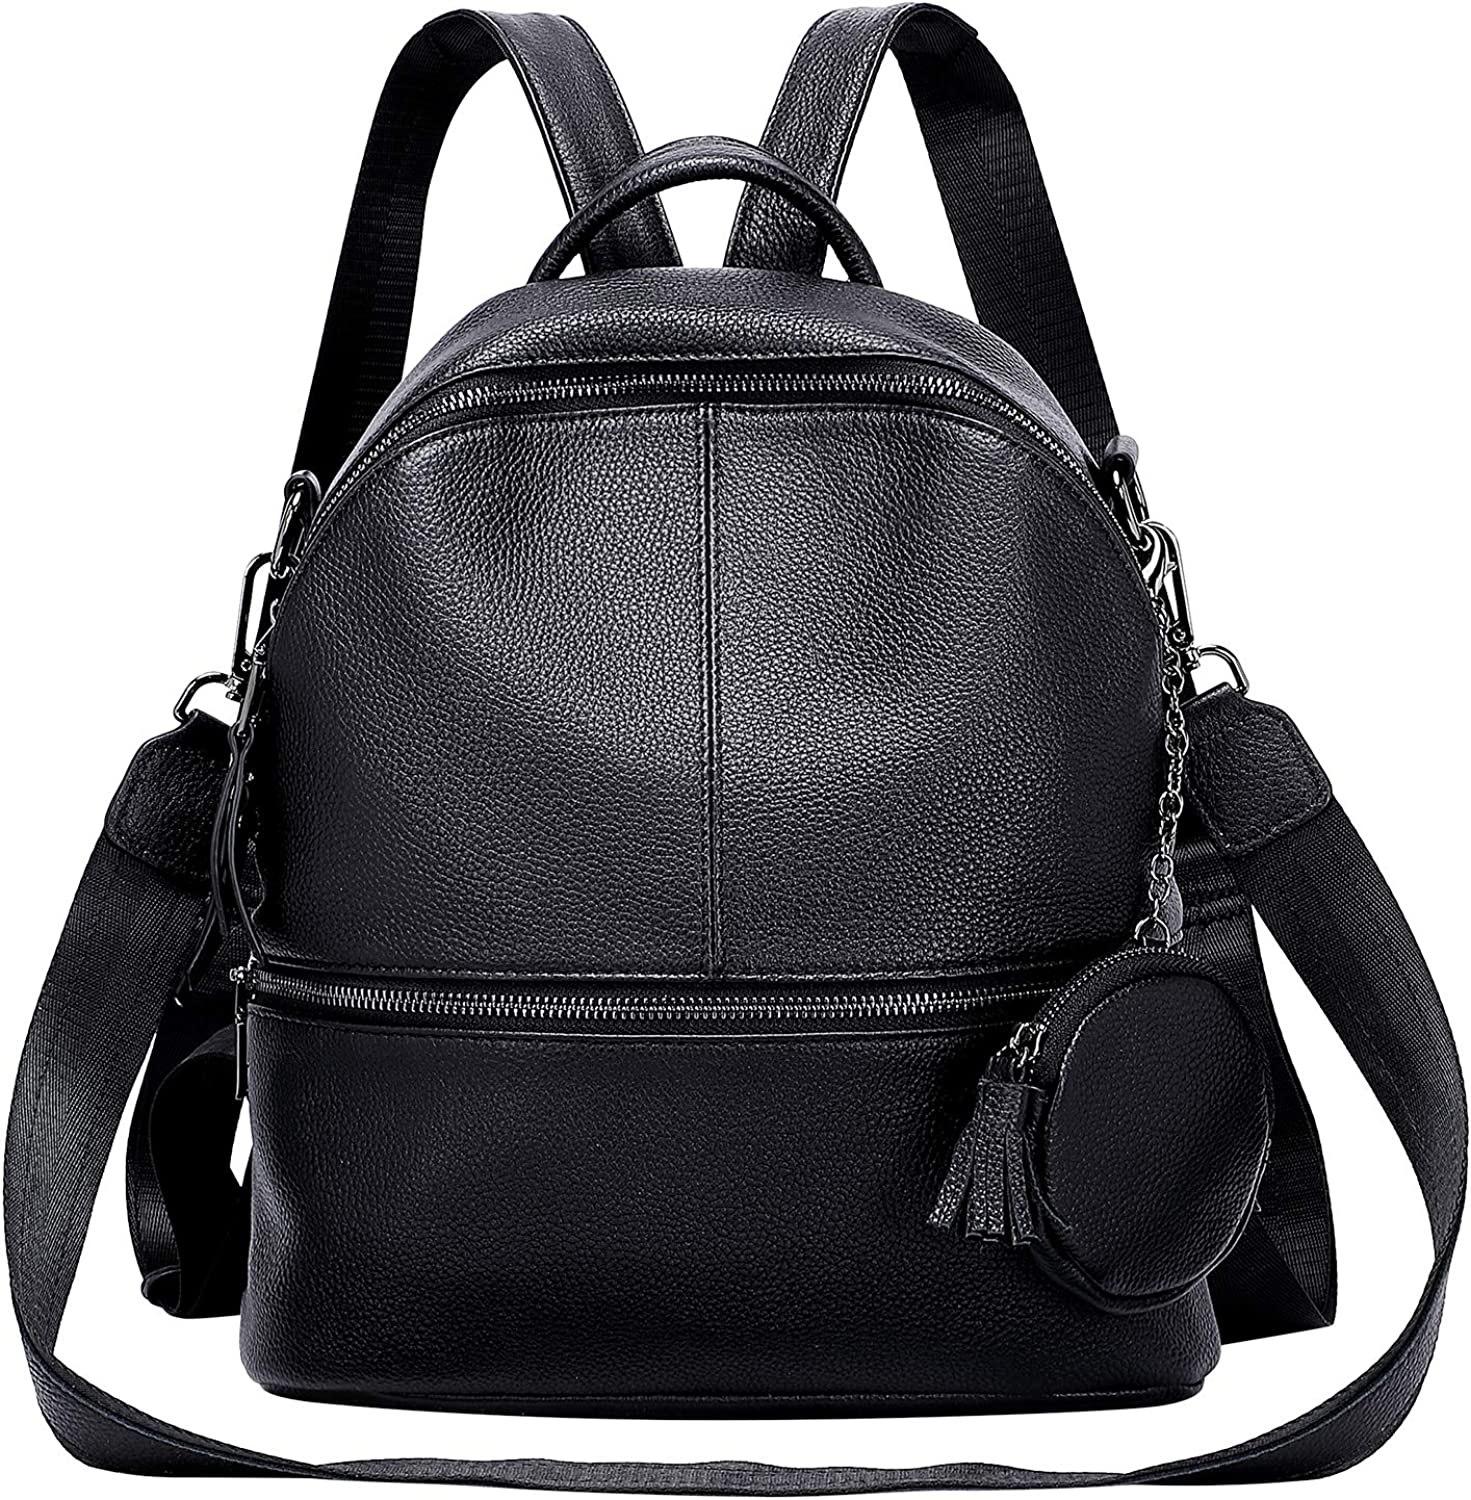 ALTOSY Genuine Leather Backpack Purse for Women Fashion Convertible Shoulder Bag with Coin Purse